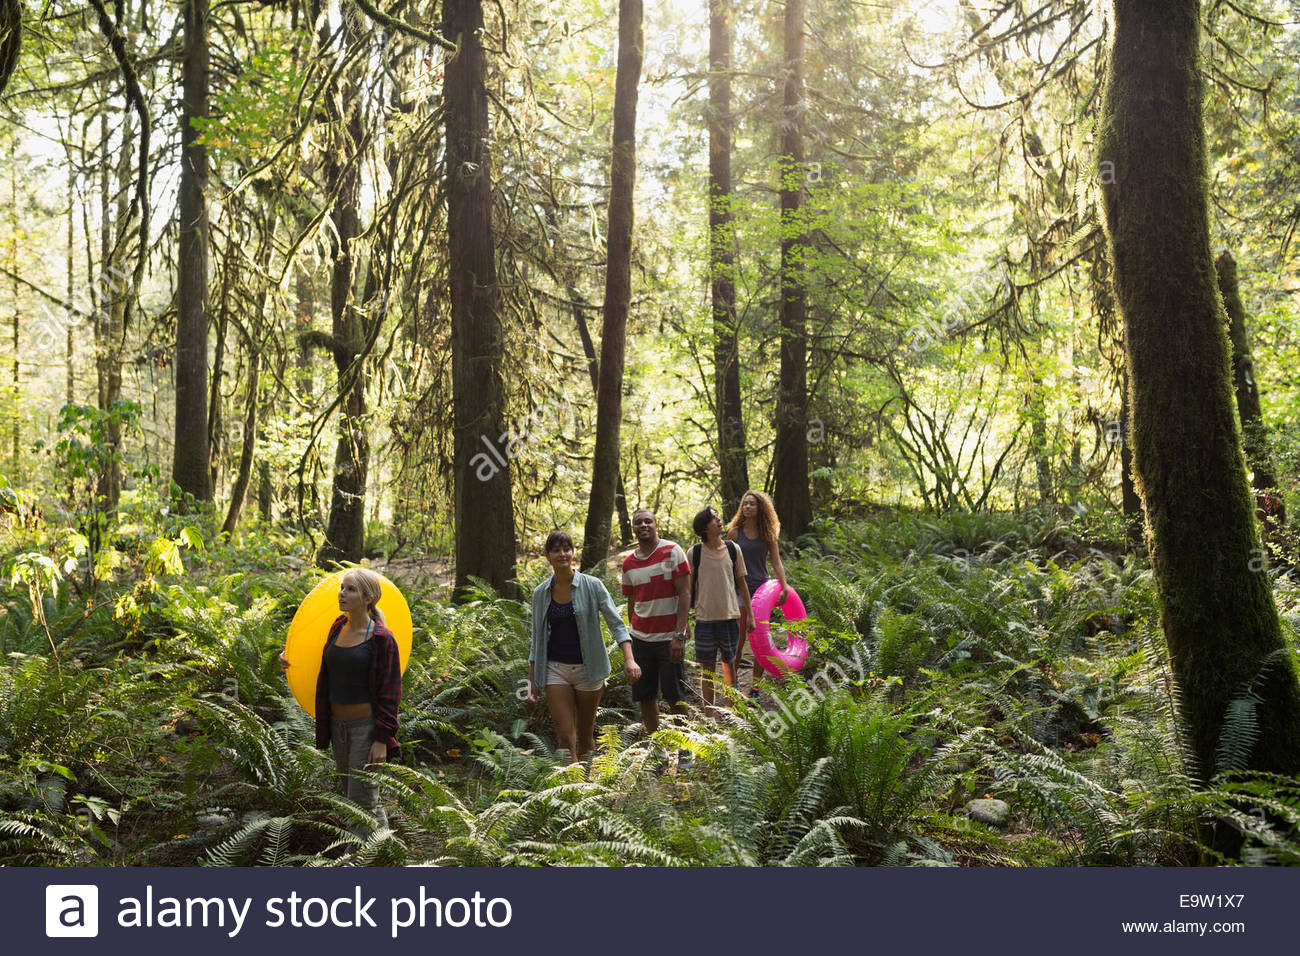 Amis avec anneaux gonflables walking in woods Photo Stock